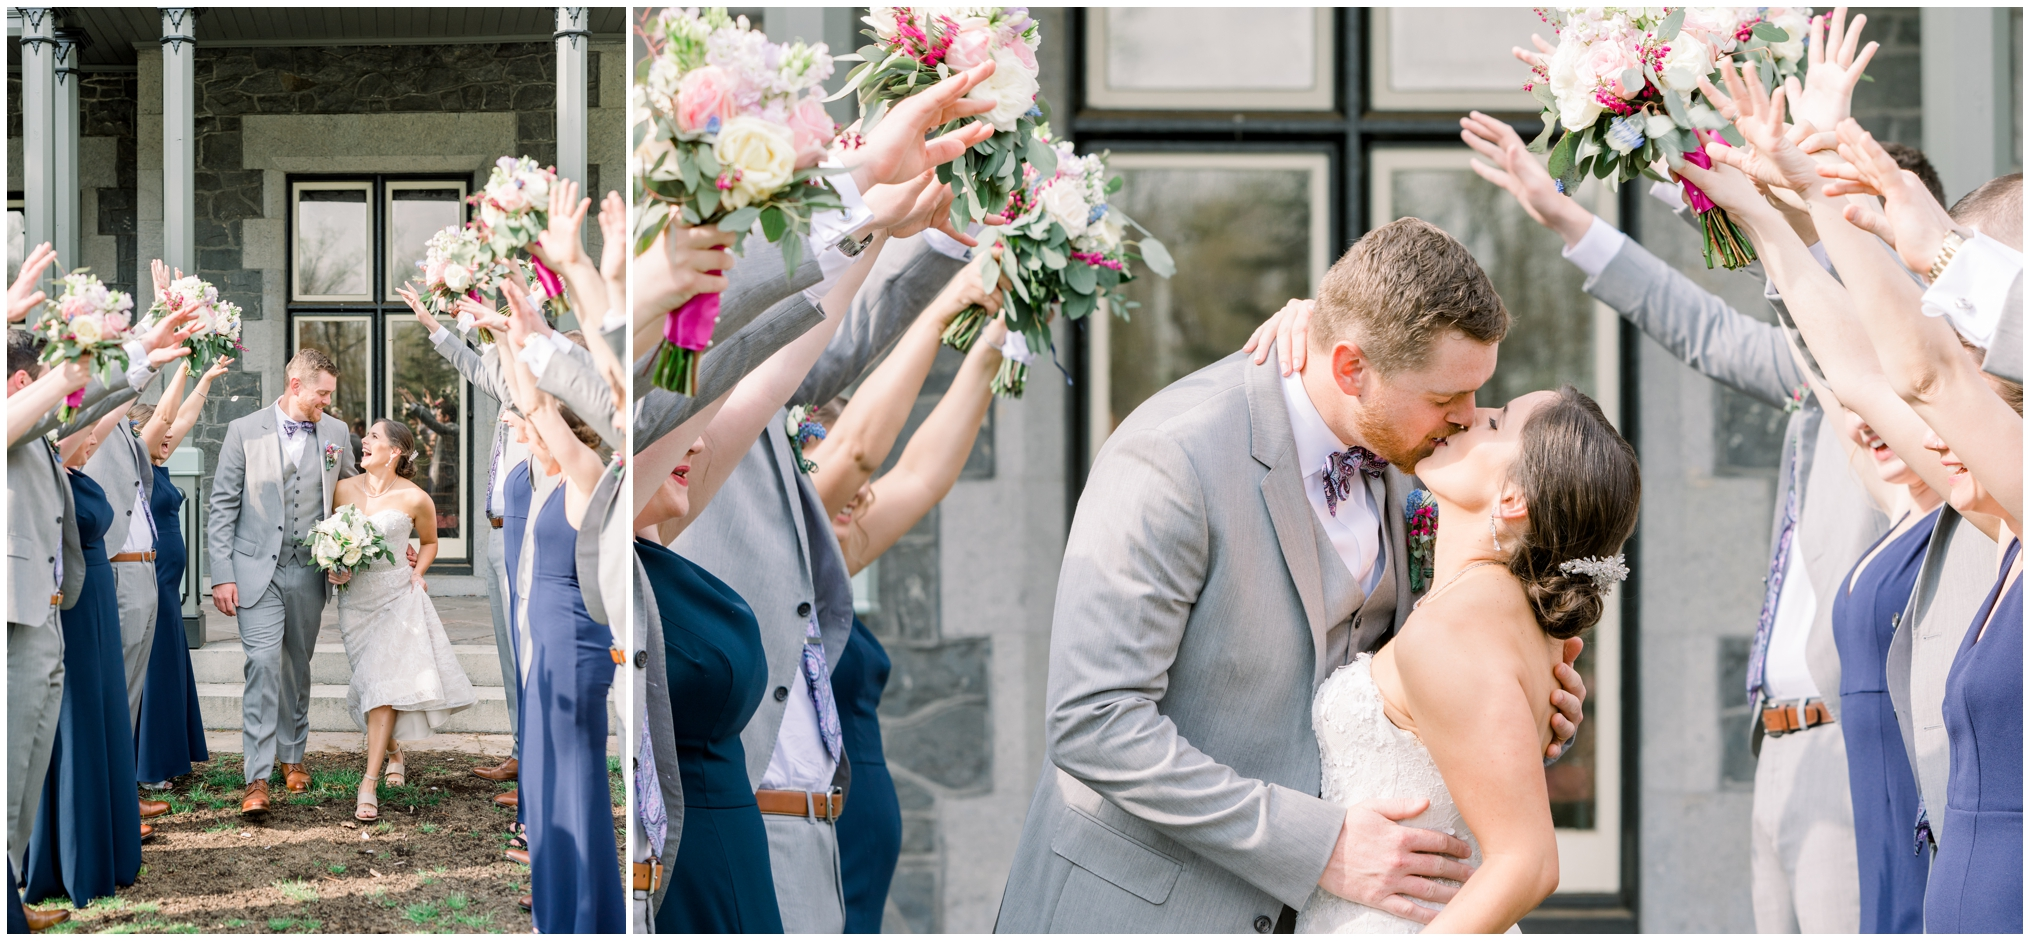 Krista Brackin Photography | April Wedding at The Carriage House at Rockwood Park_0068.jpg